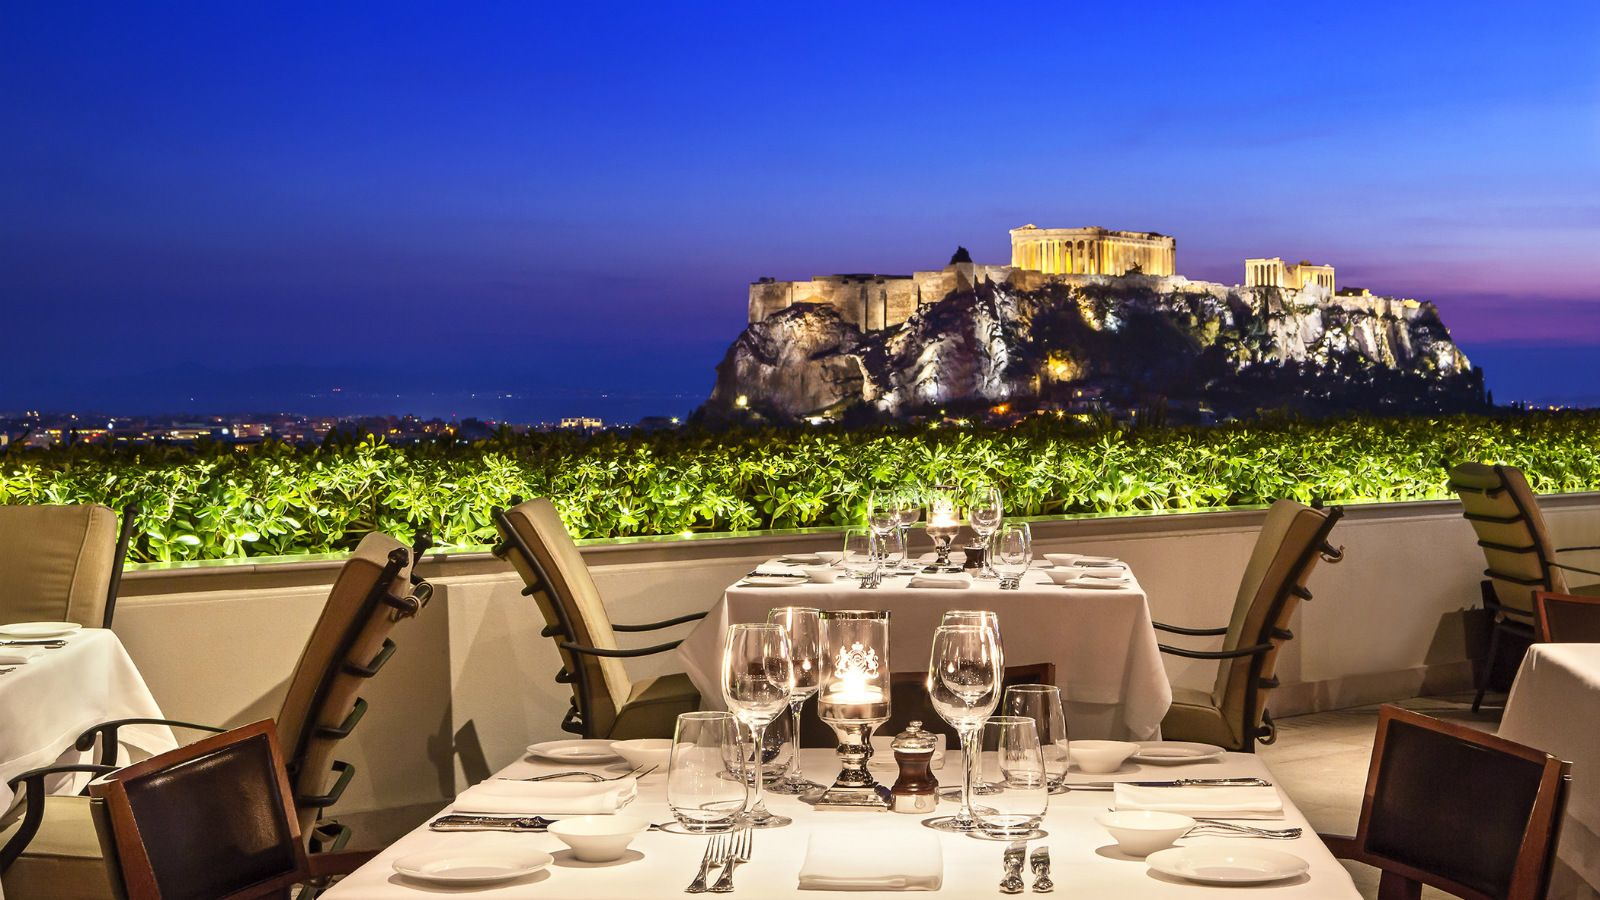 GB-Roof-Garden-Restaurant-Bar-at-the-Hotel-Grande-Bretagne-Athens-Romantic-Dinner